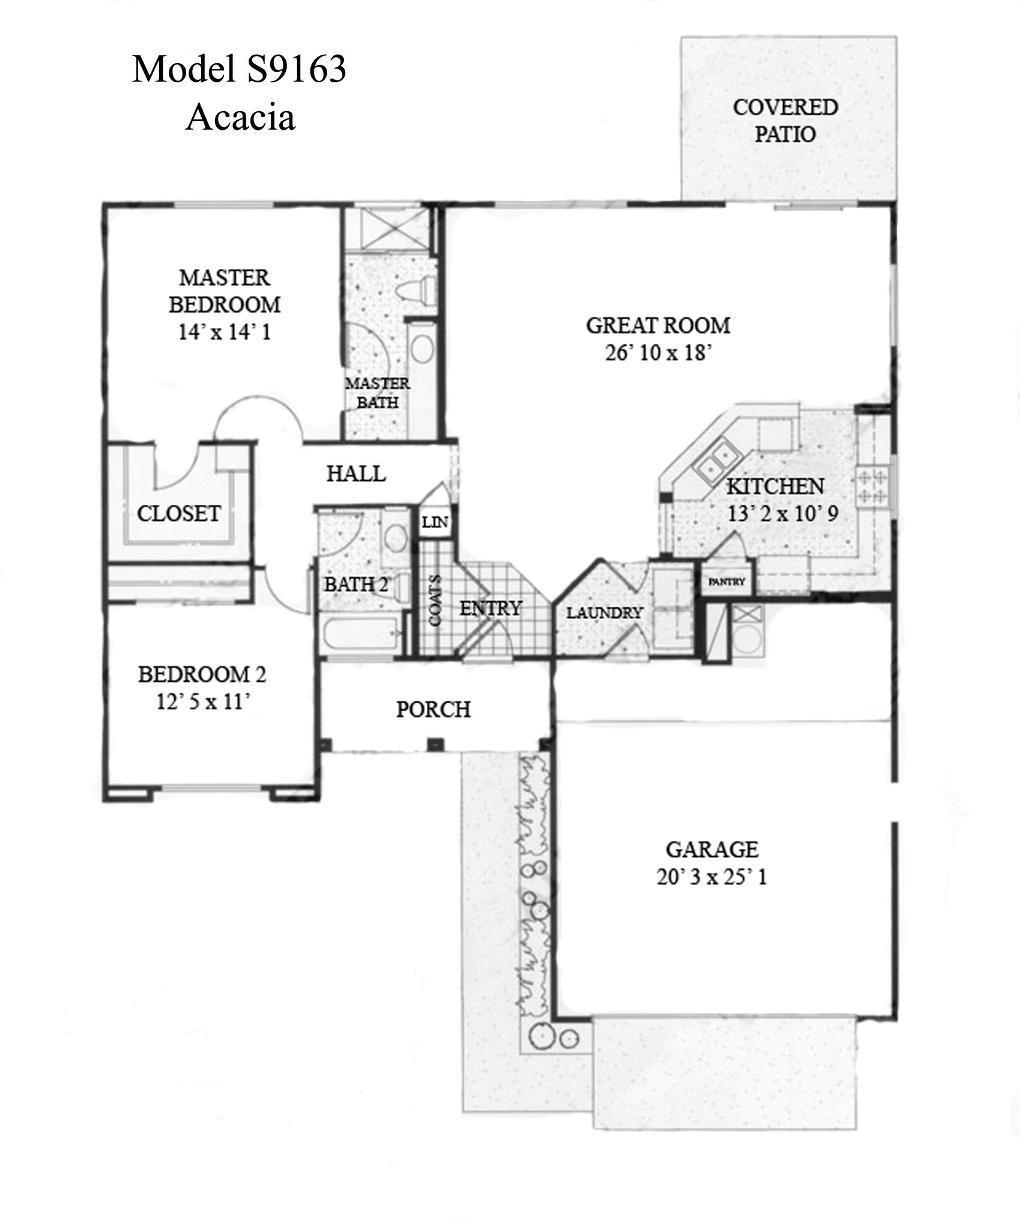 Sun City Grand Acacia floor plan, Del Webb Sun City Grand Floor Plan Model Home House Plans Floorplans Models in Surprise Phoenix Arizona AZ Ken Meade Realty Kathy Anderson